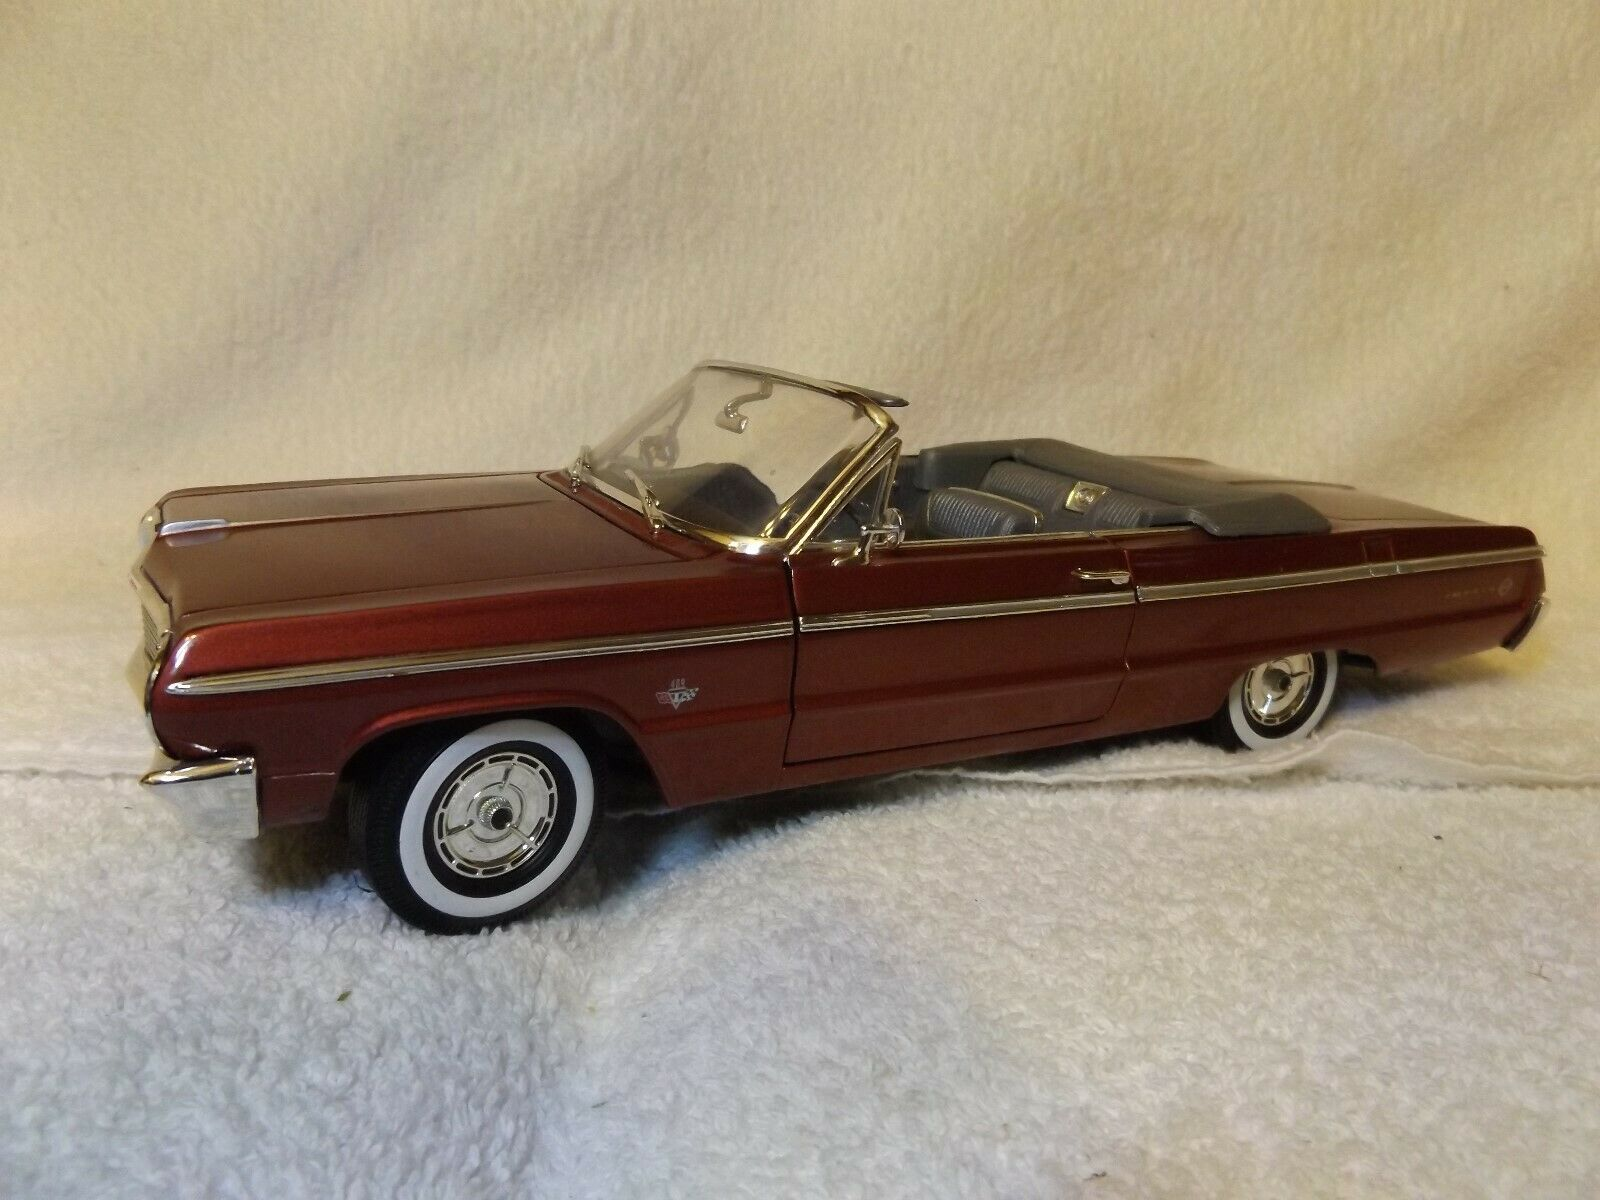 Vintage DIECAST--1964 Chevy Impala Ss CONV--1 18 SCALE--11 1 2 Long--by Ertl